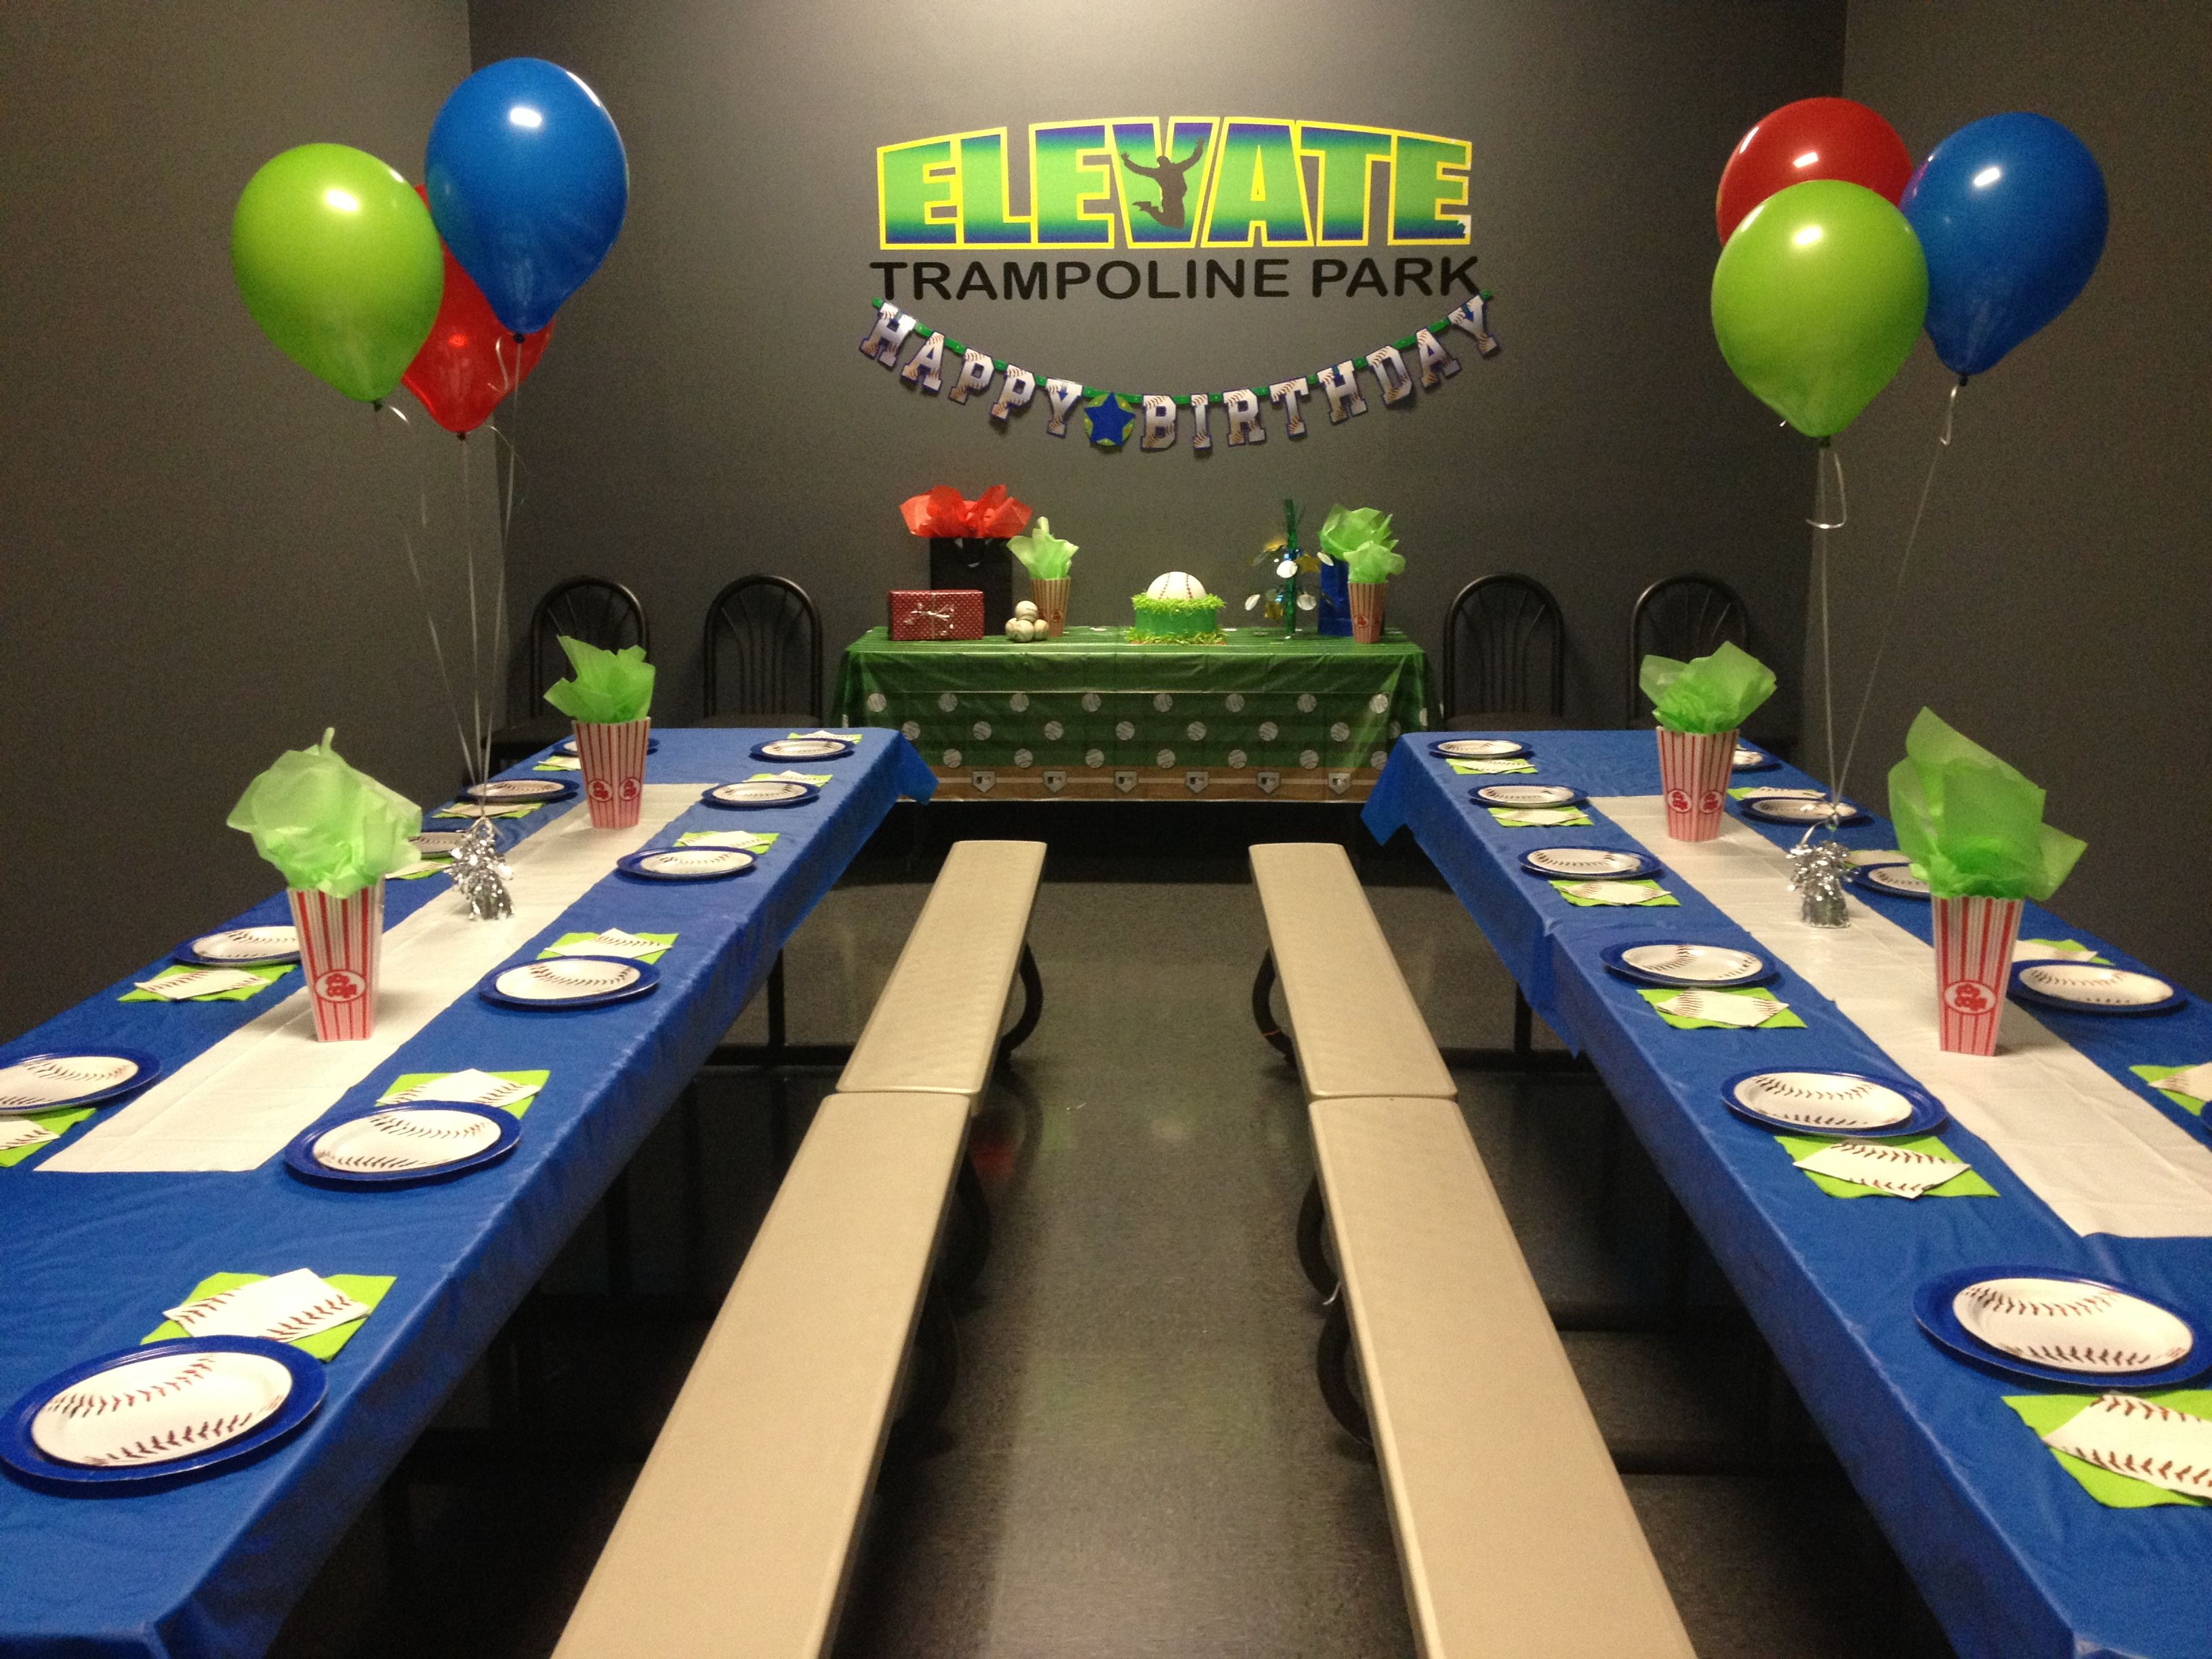 Boys Party Room At Elevate Trampoline Park In Mckinney Texas Trampoline Birthday Party Trampoline Party Birthday Party At Park